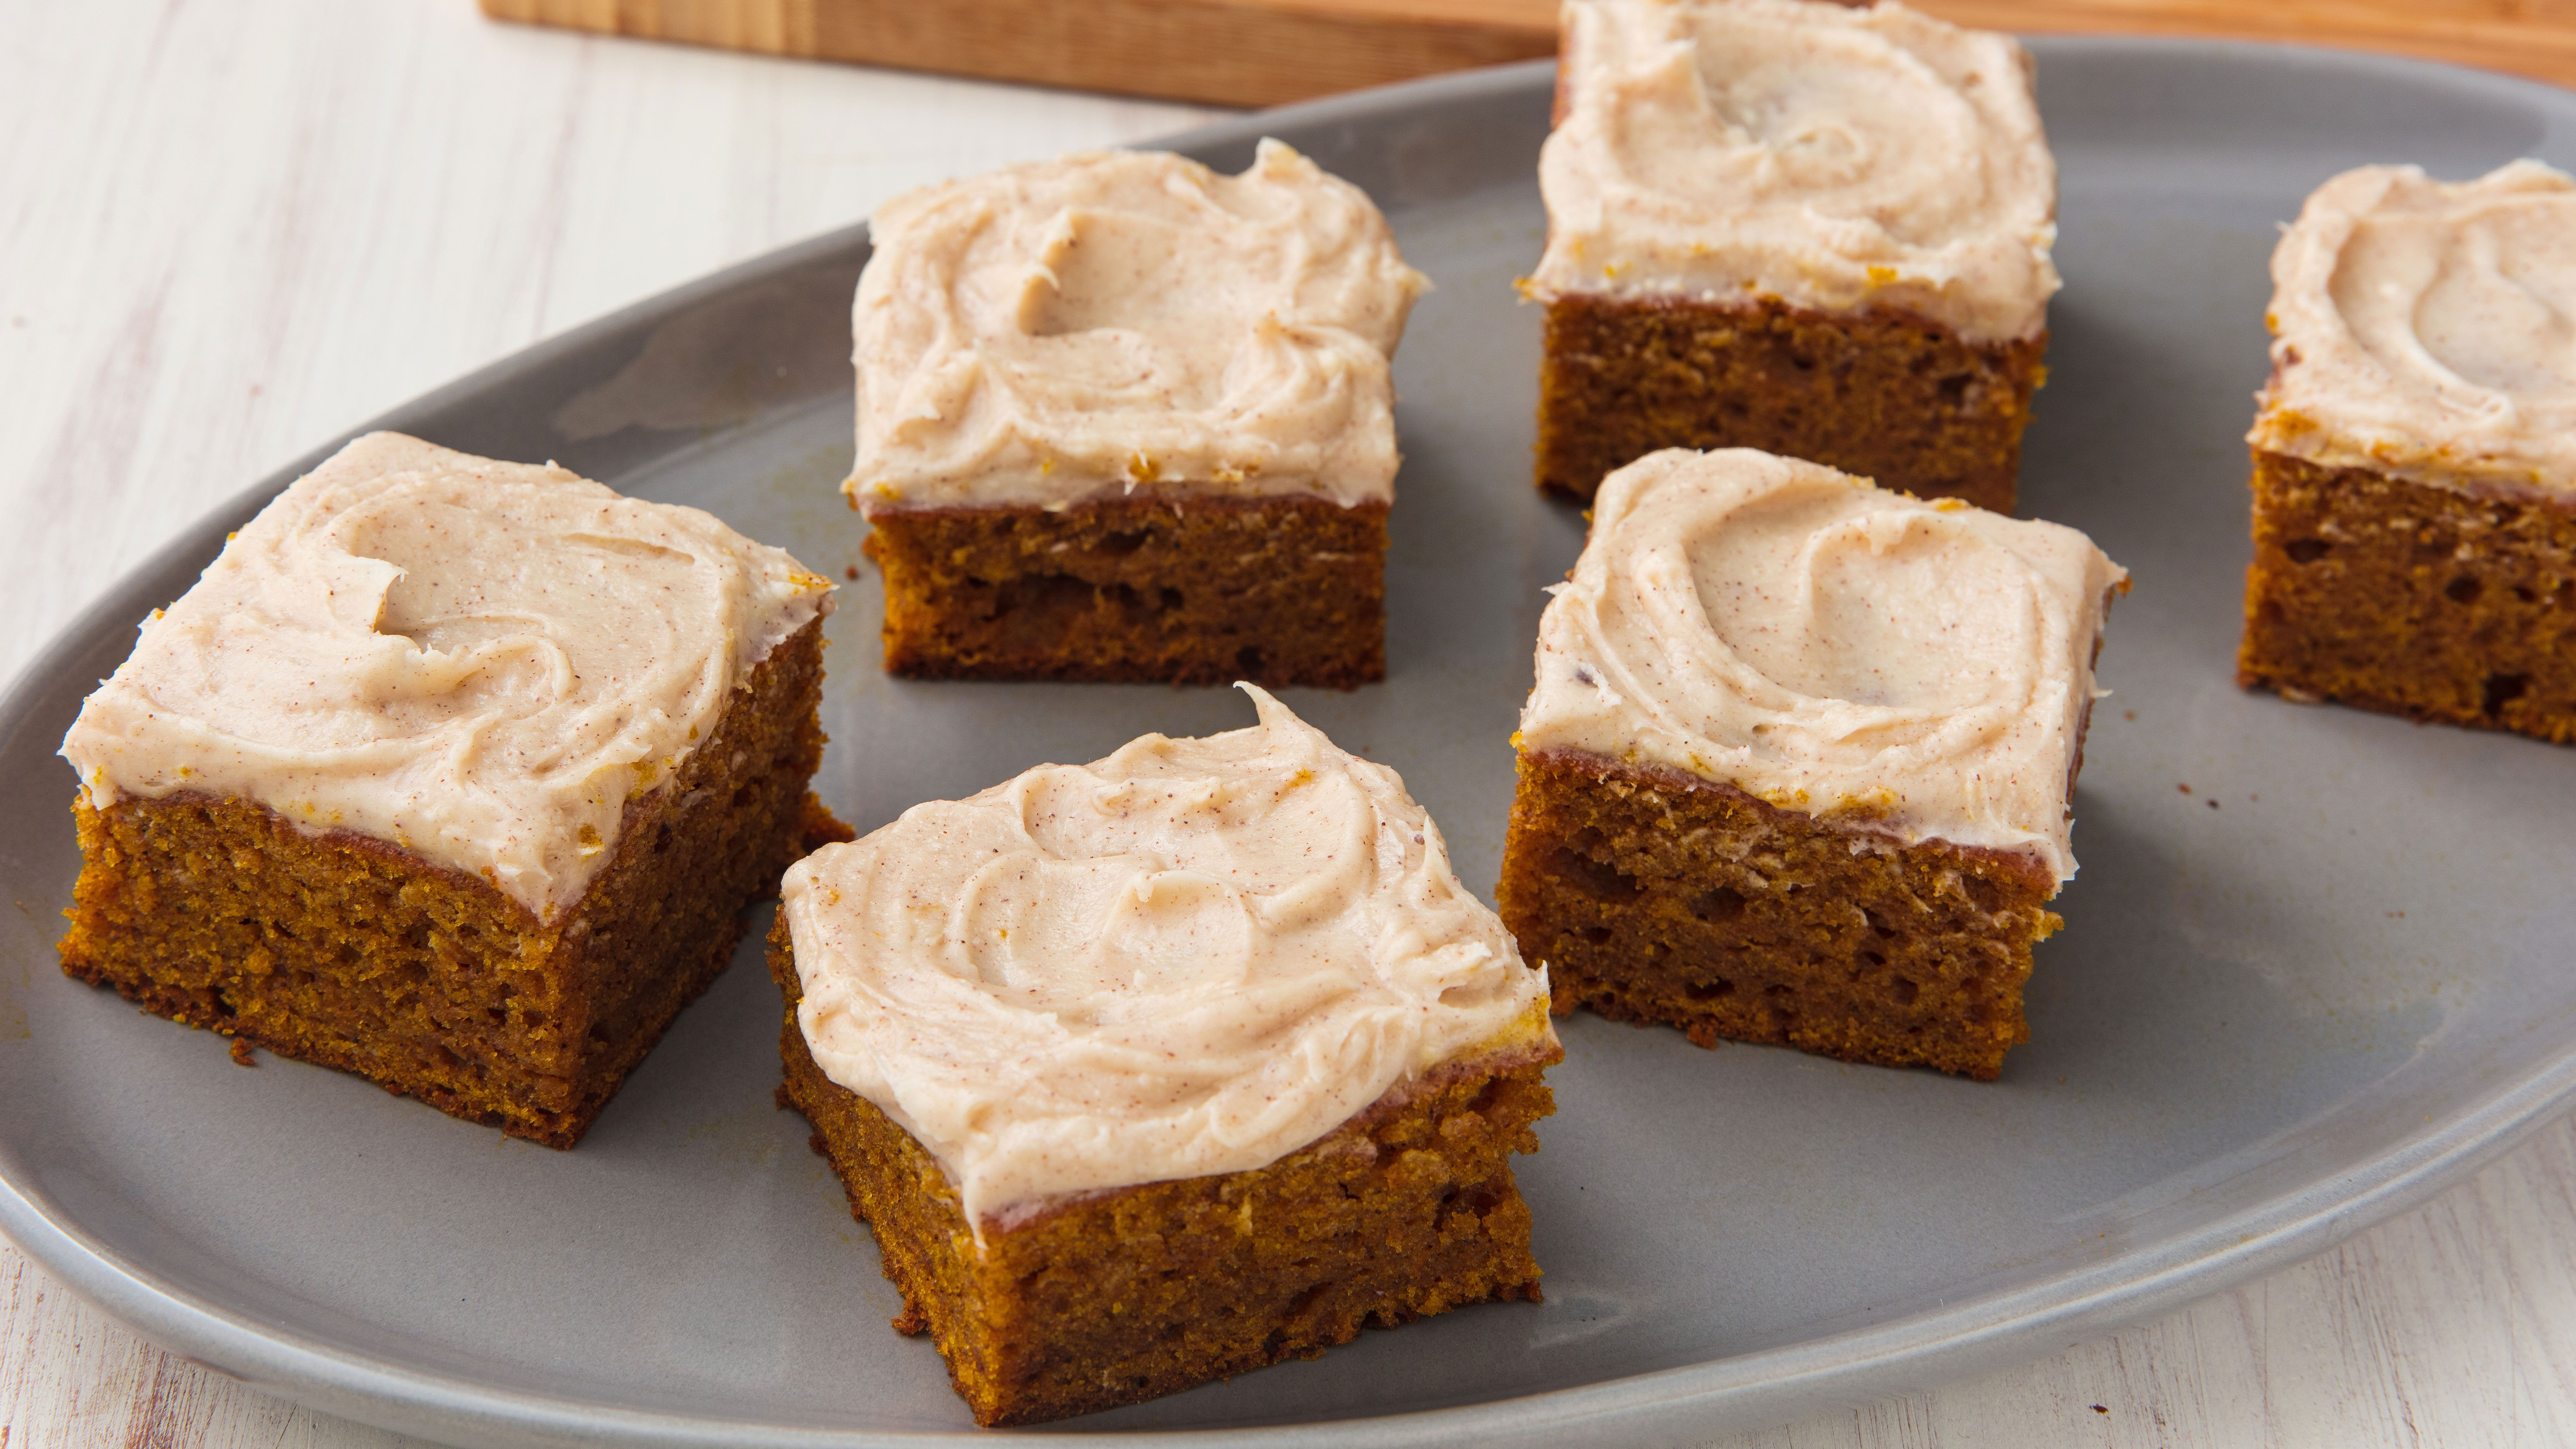 Best Pumpkin Bars With Recipe How To Make Pumpkin Bars With Cream Cheese Frosting